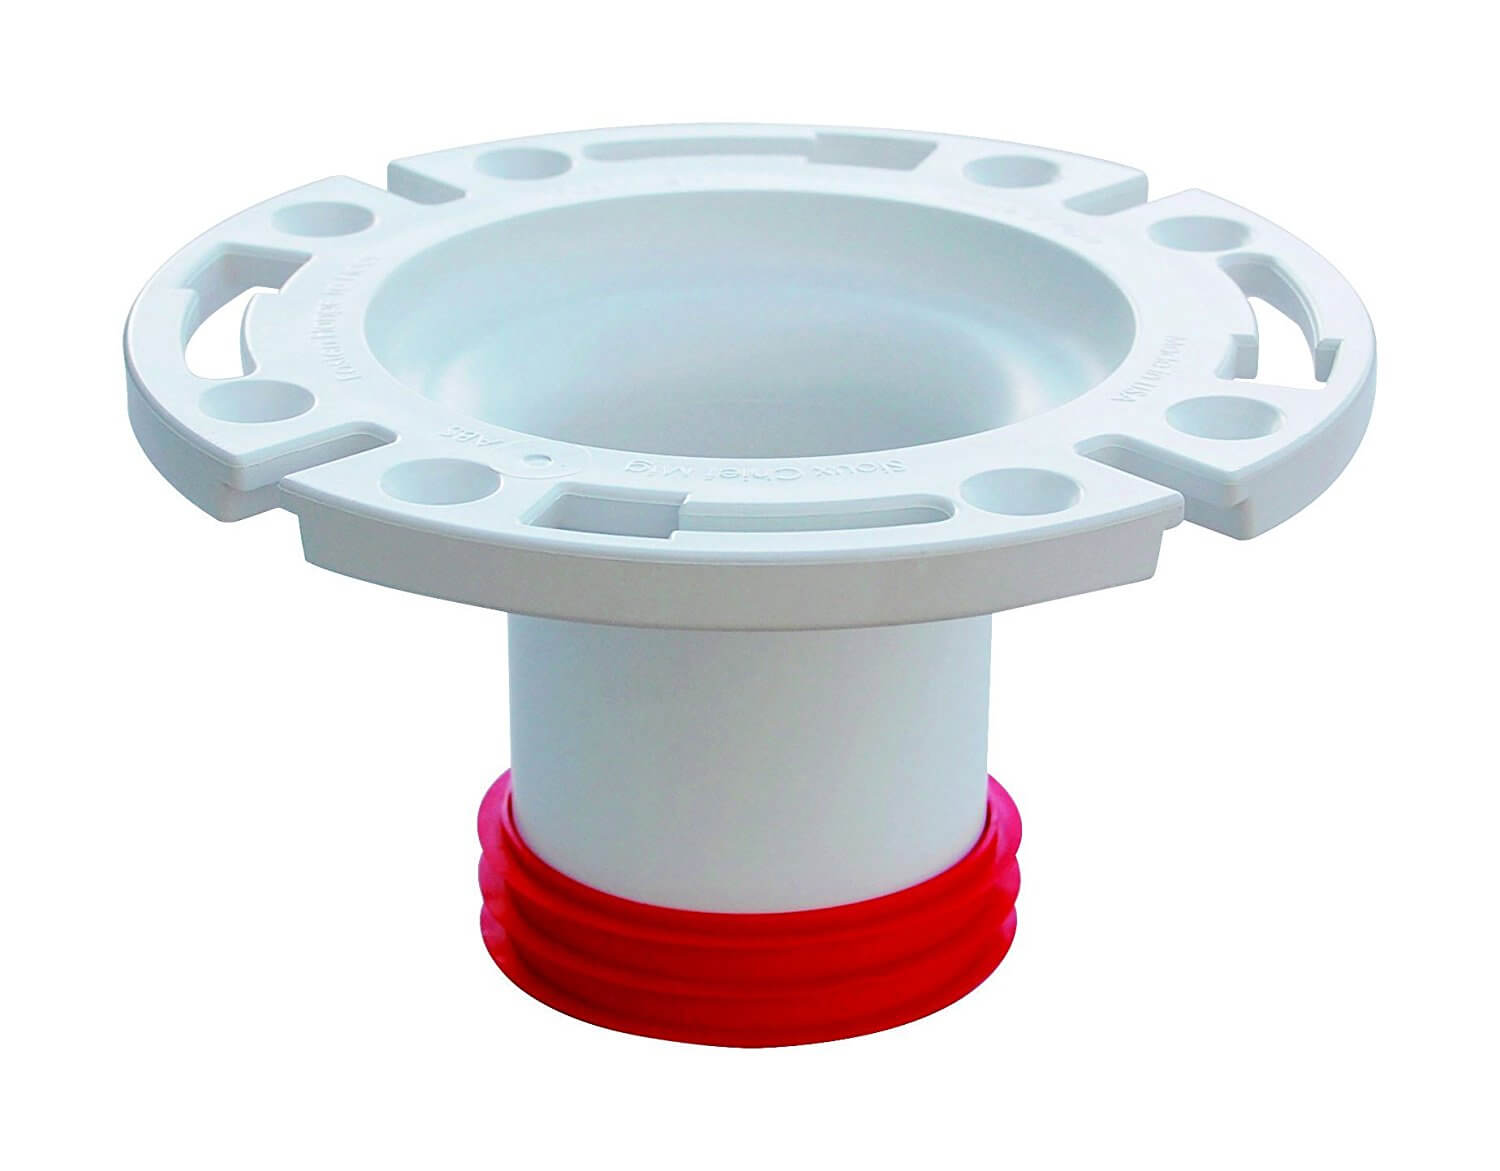 "CLOSET FLANGE PUSH PVC3"" by SIOUX CHIEF MfrPartNo 888-GPM"